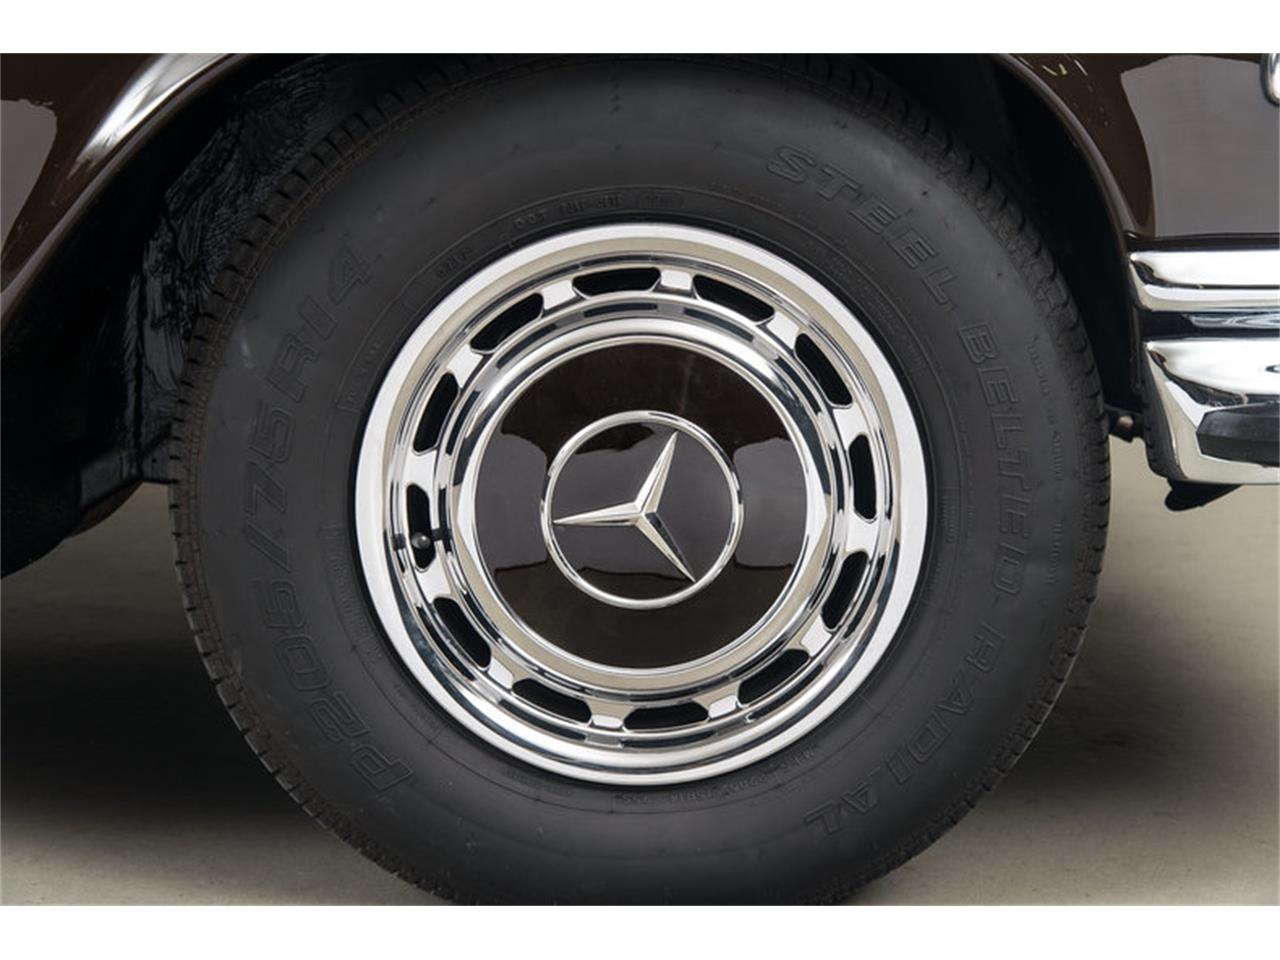 Large Picture of Classic '71 Mercedes-Benz 280 SE 3.5 Cabriolet located in Scotts Valley California Auction Vehicle - G0JQ